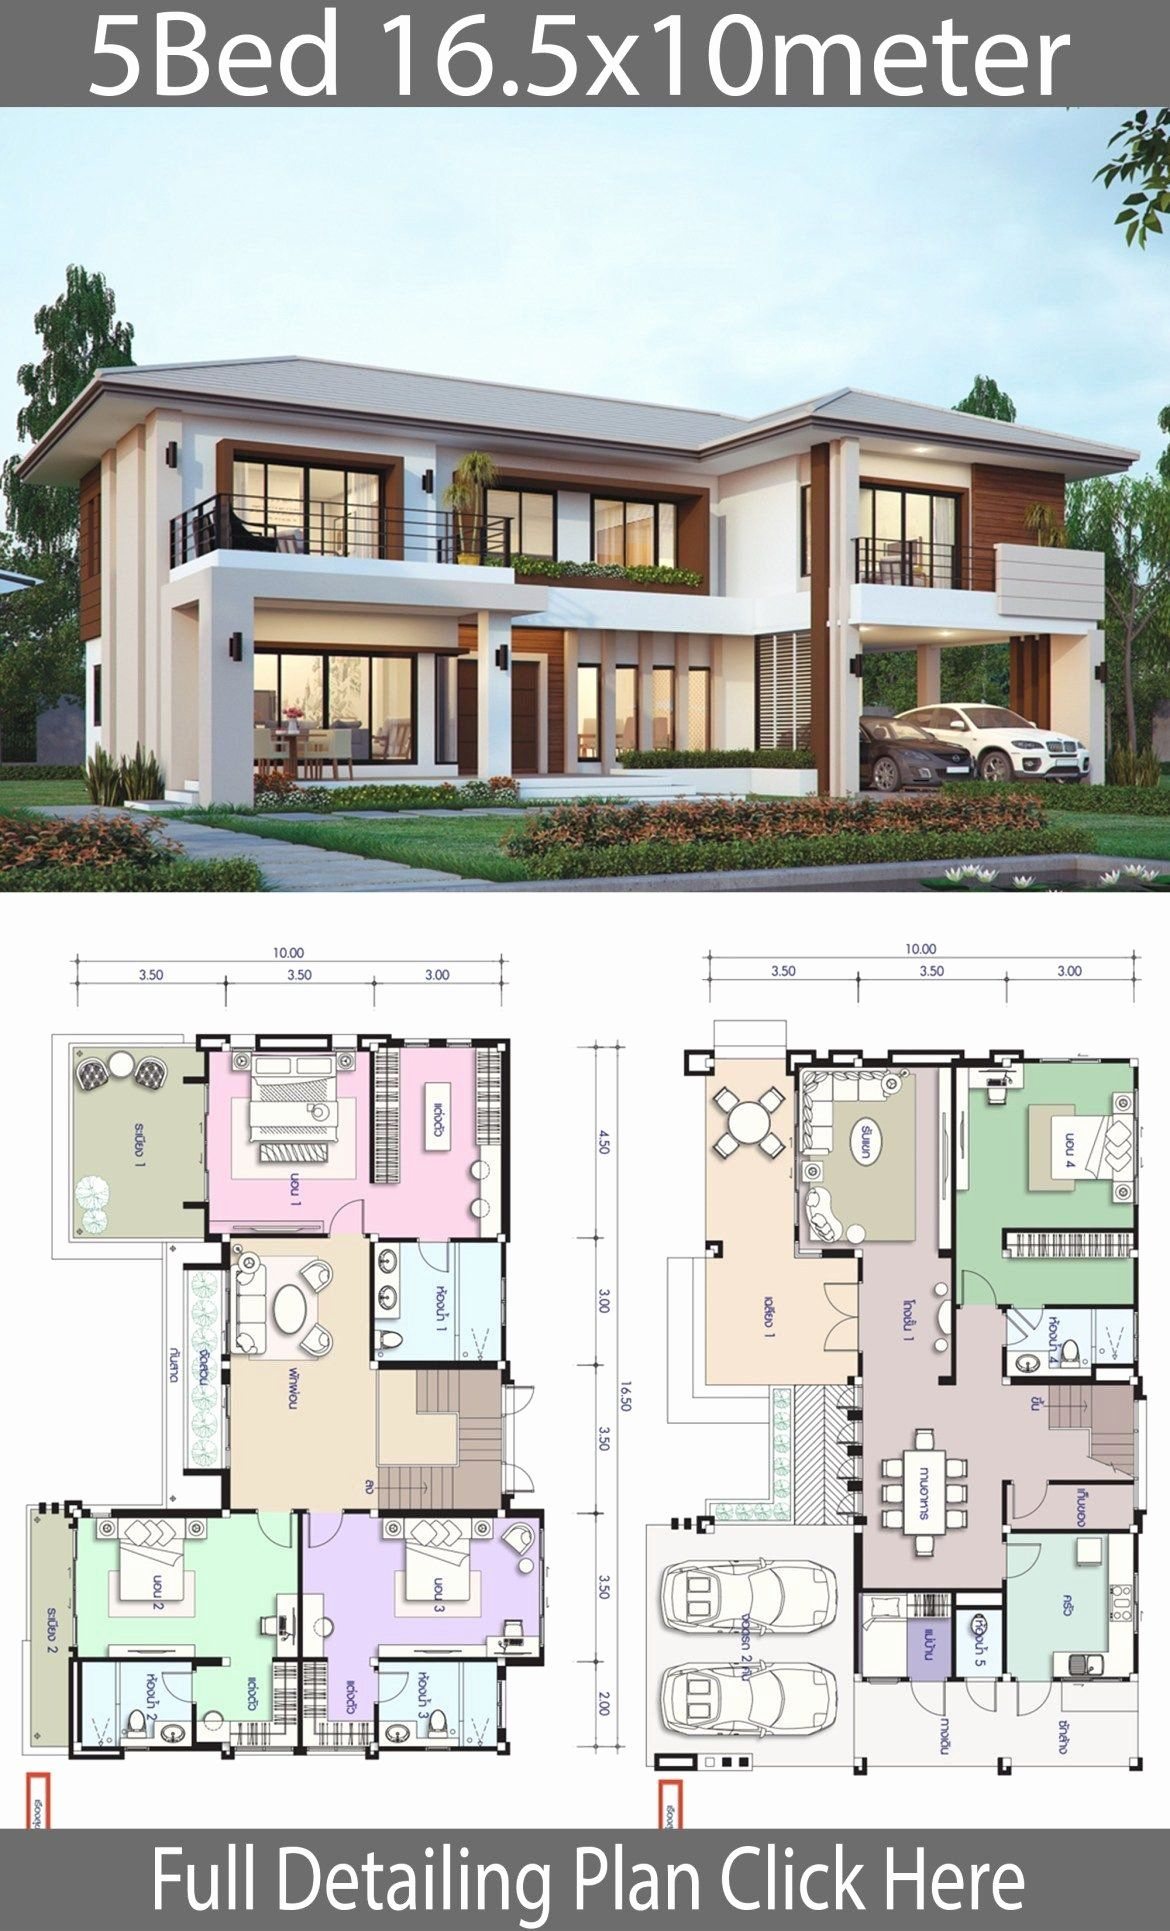 5 Bedroom Bungalow House Plans Awesome House Design 12x15m With 5 Bedrooms Homify Best In 2020 Sims House Plans House Projects Architecture House Designs Exterior